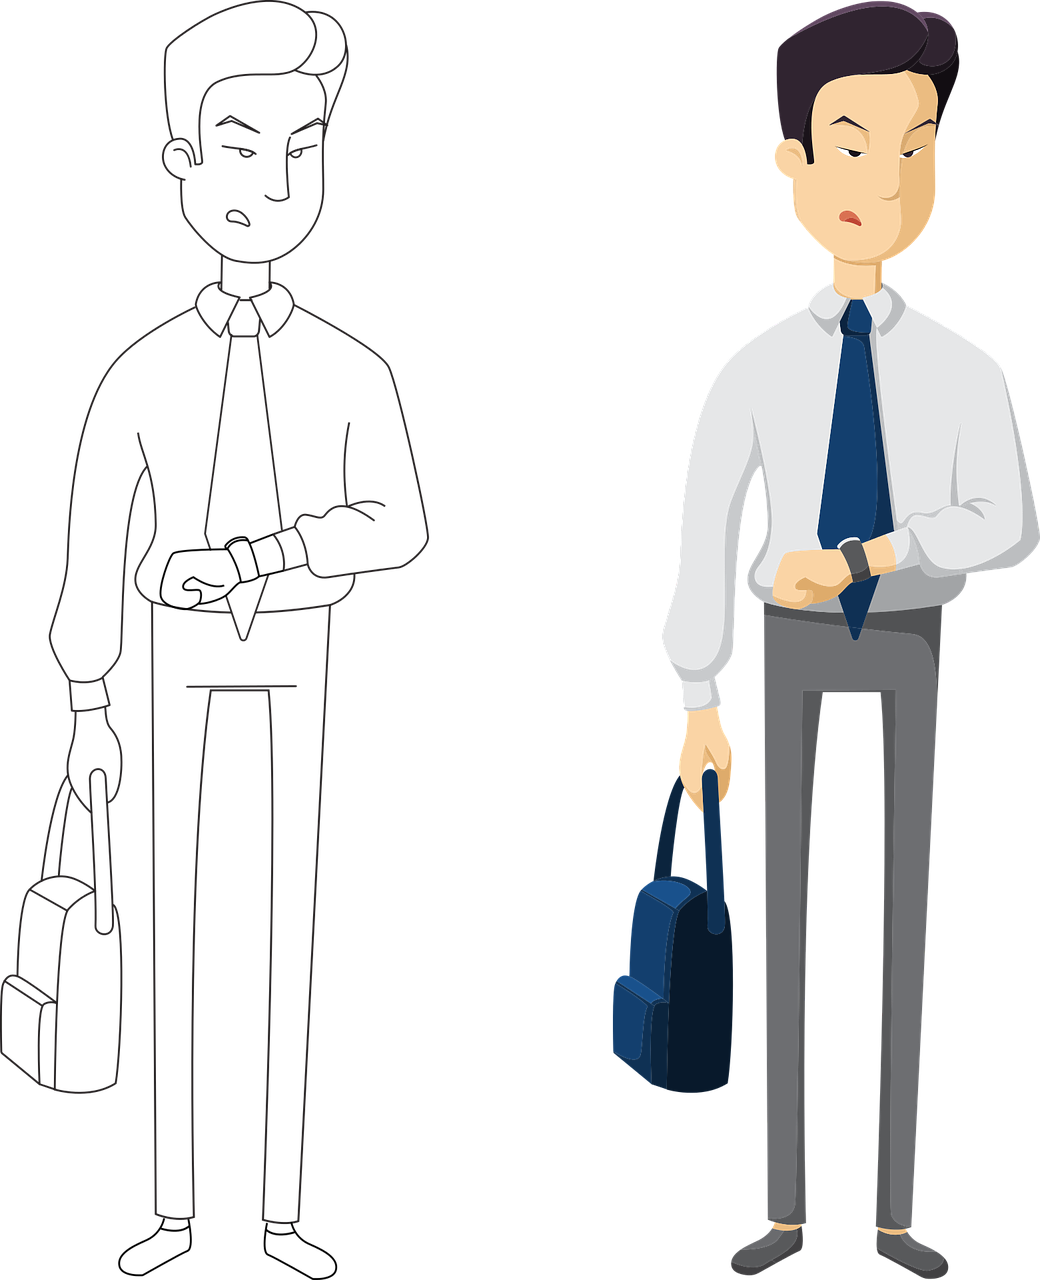 See Businessperson Workers Time Free Transparent Image HQ PNG Image